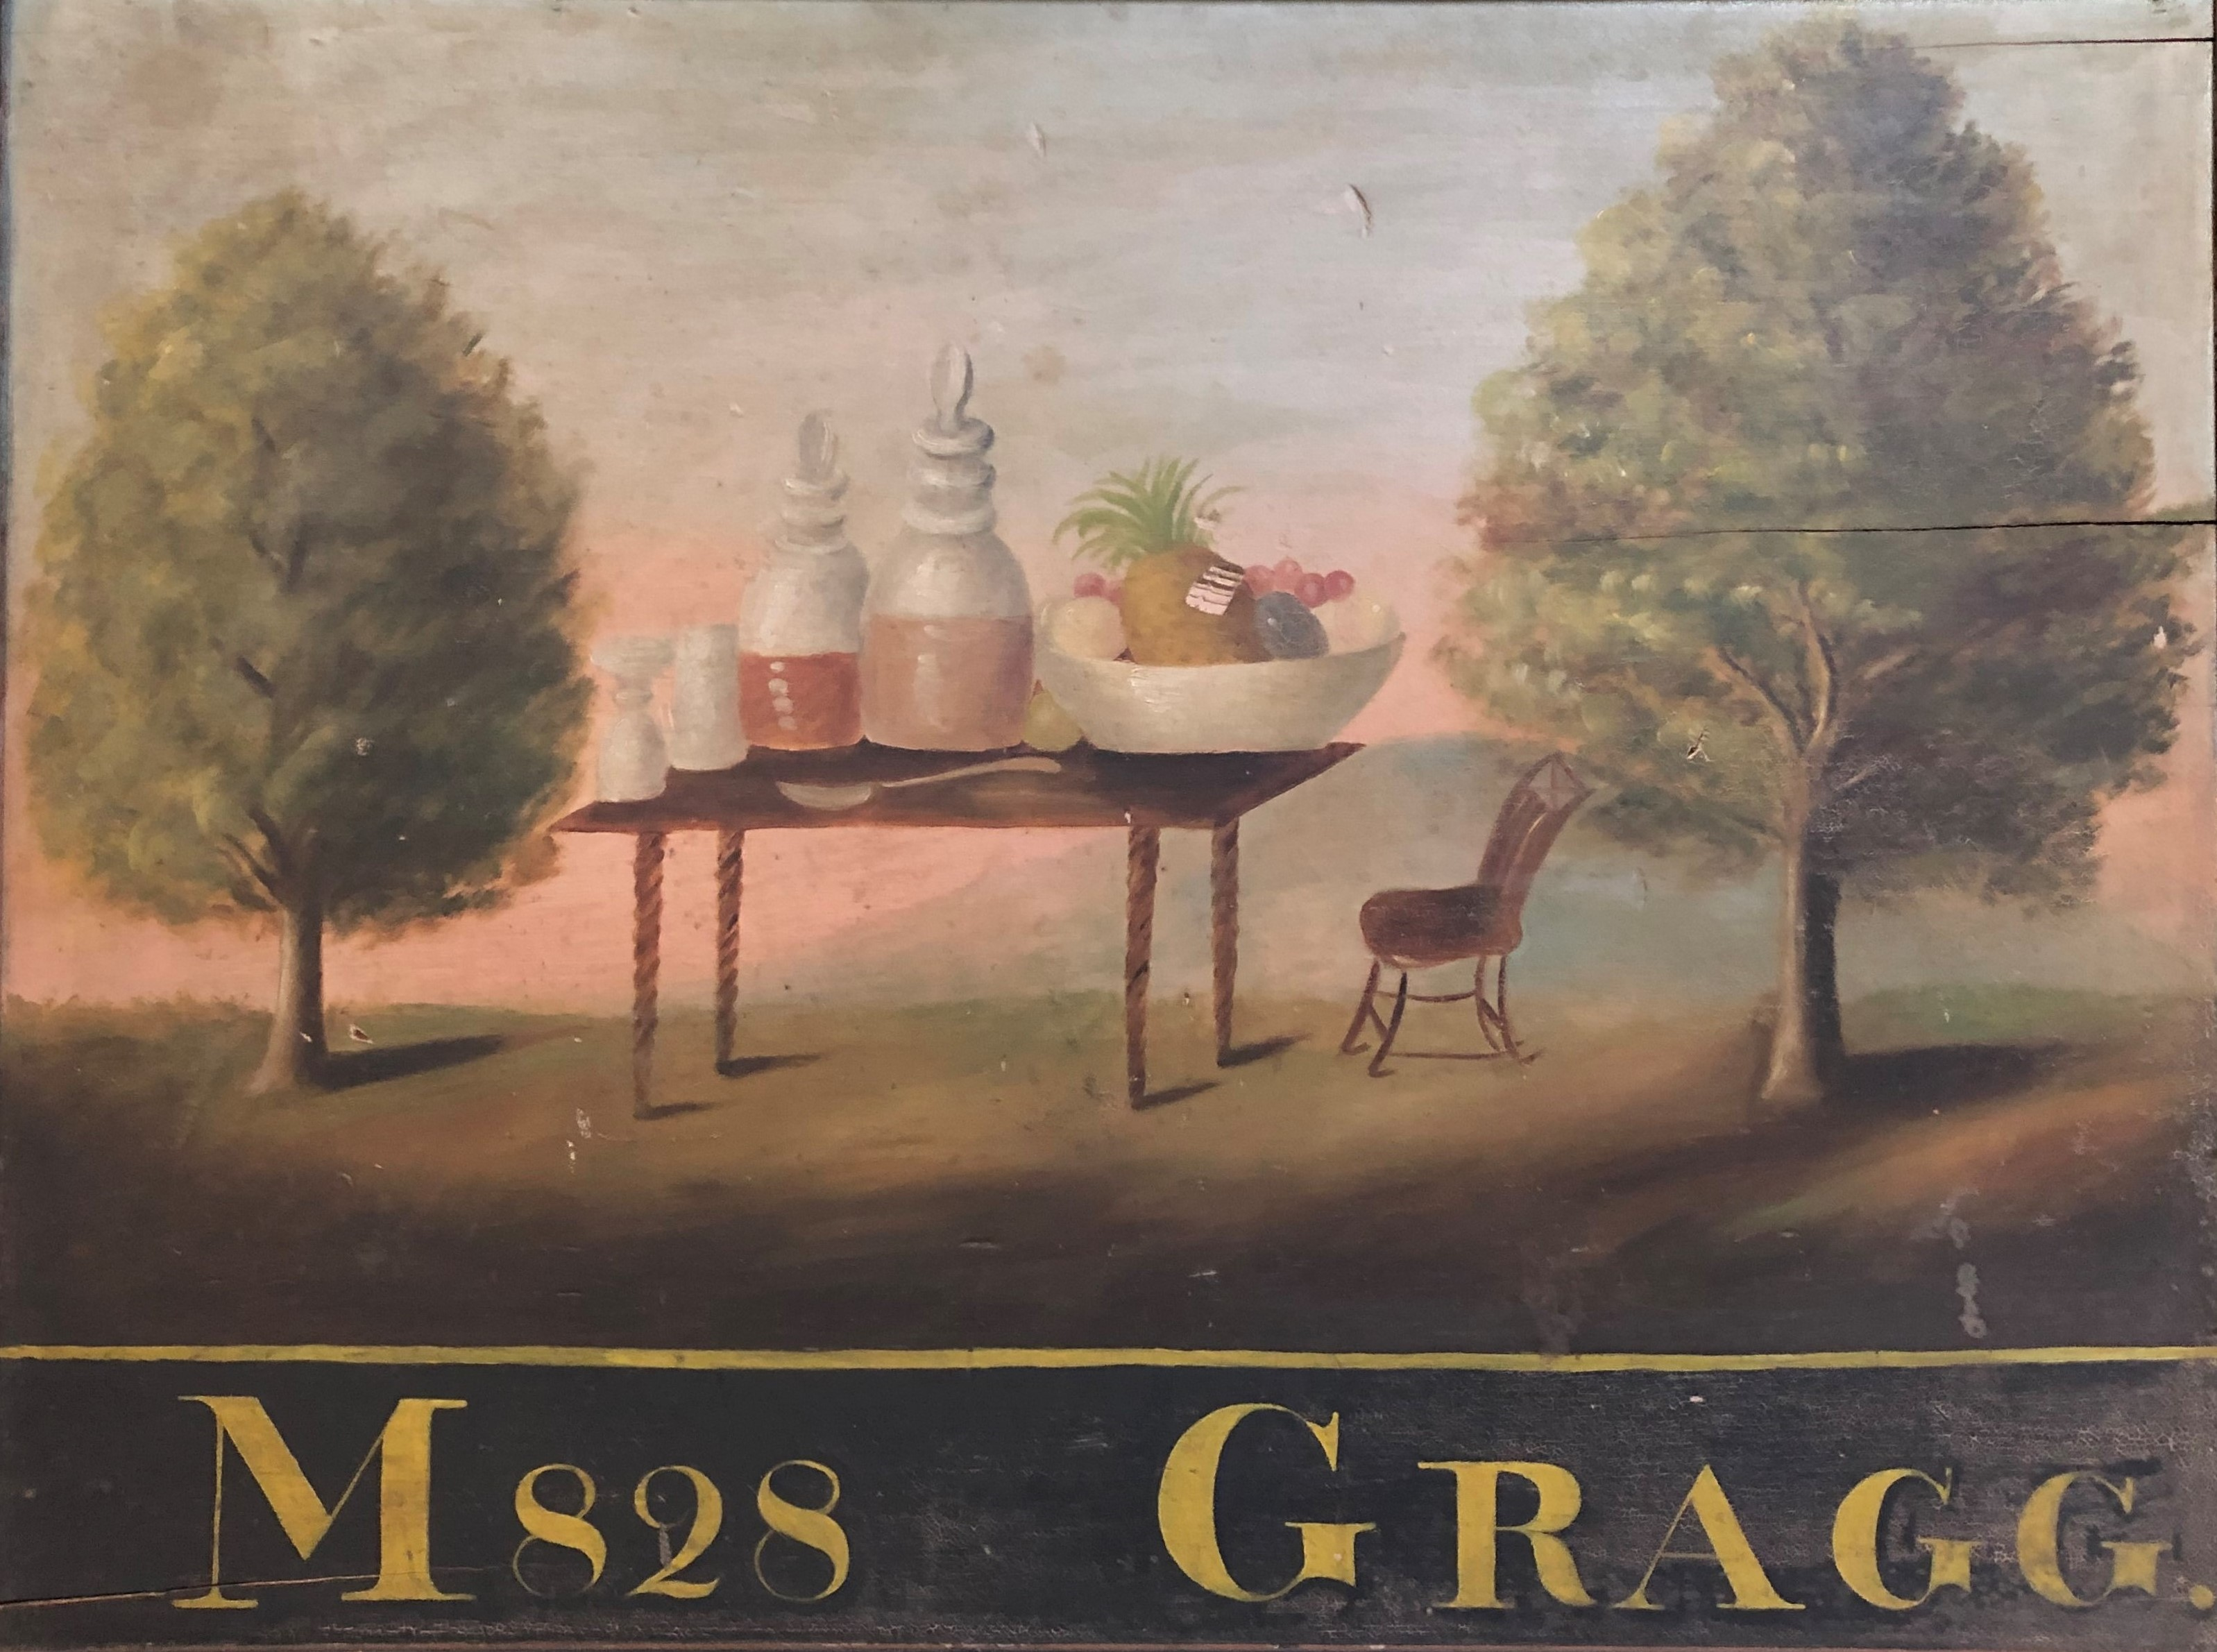 Moses Gragg Tavern Sign, 1828